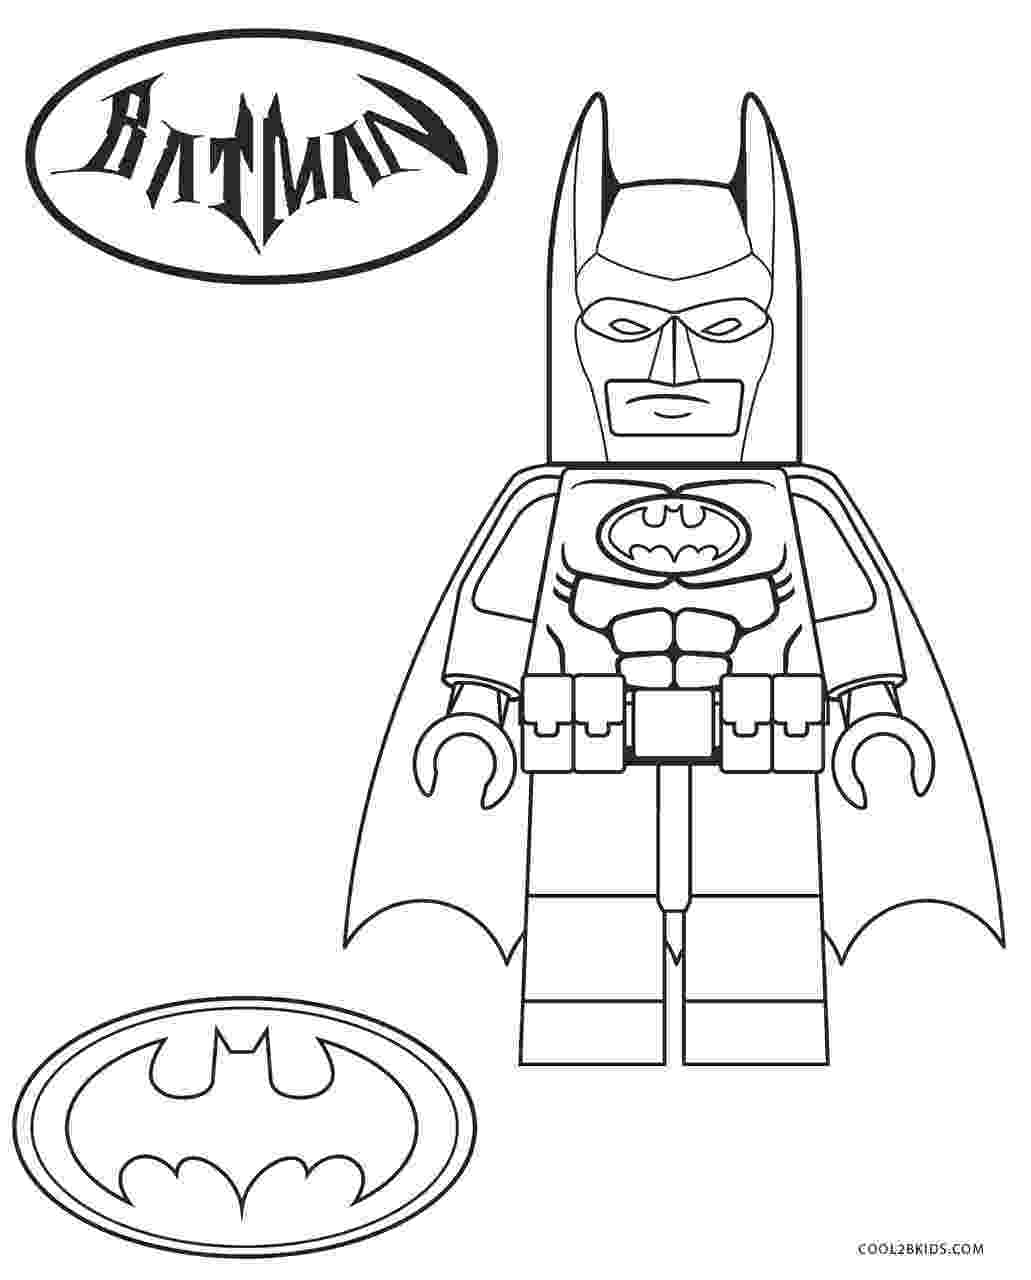 free lego printable coloring book lego star wars coloring pages to download and print for free book printable coloring lego free